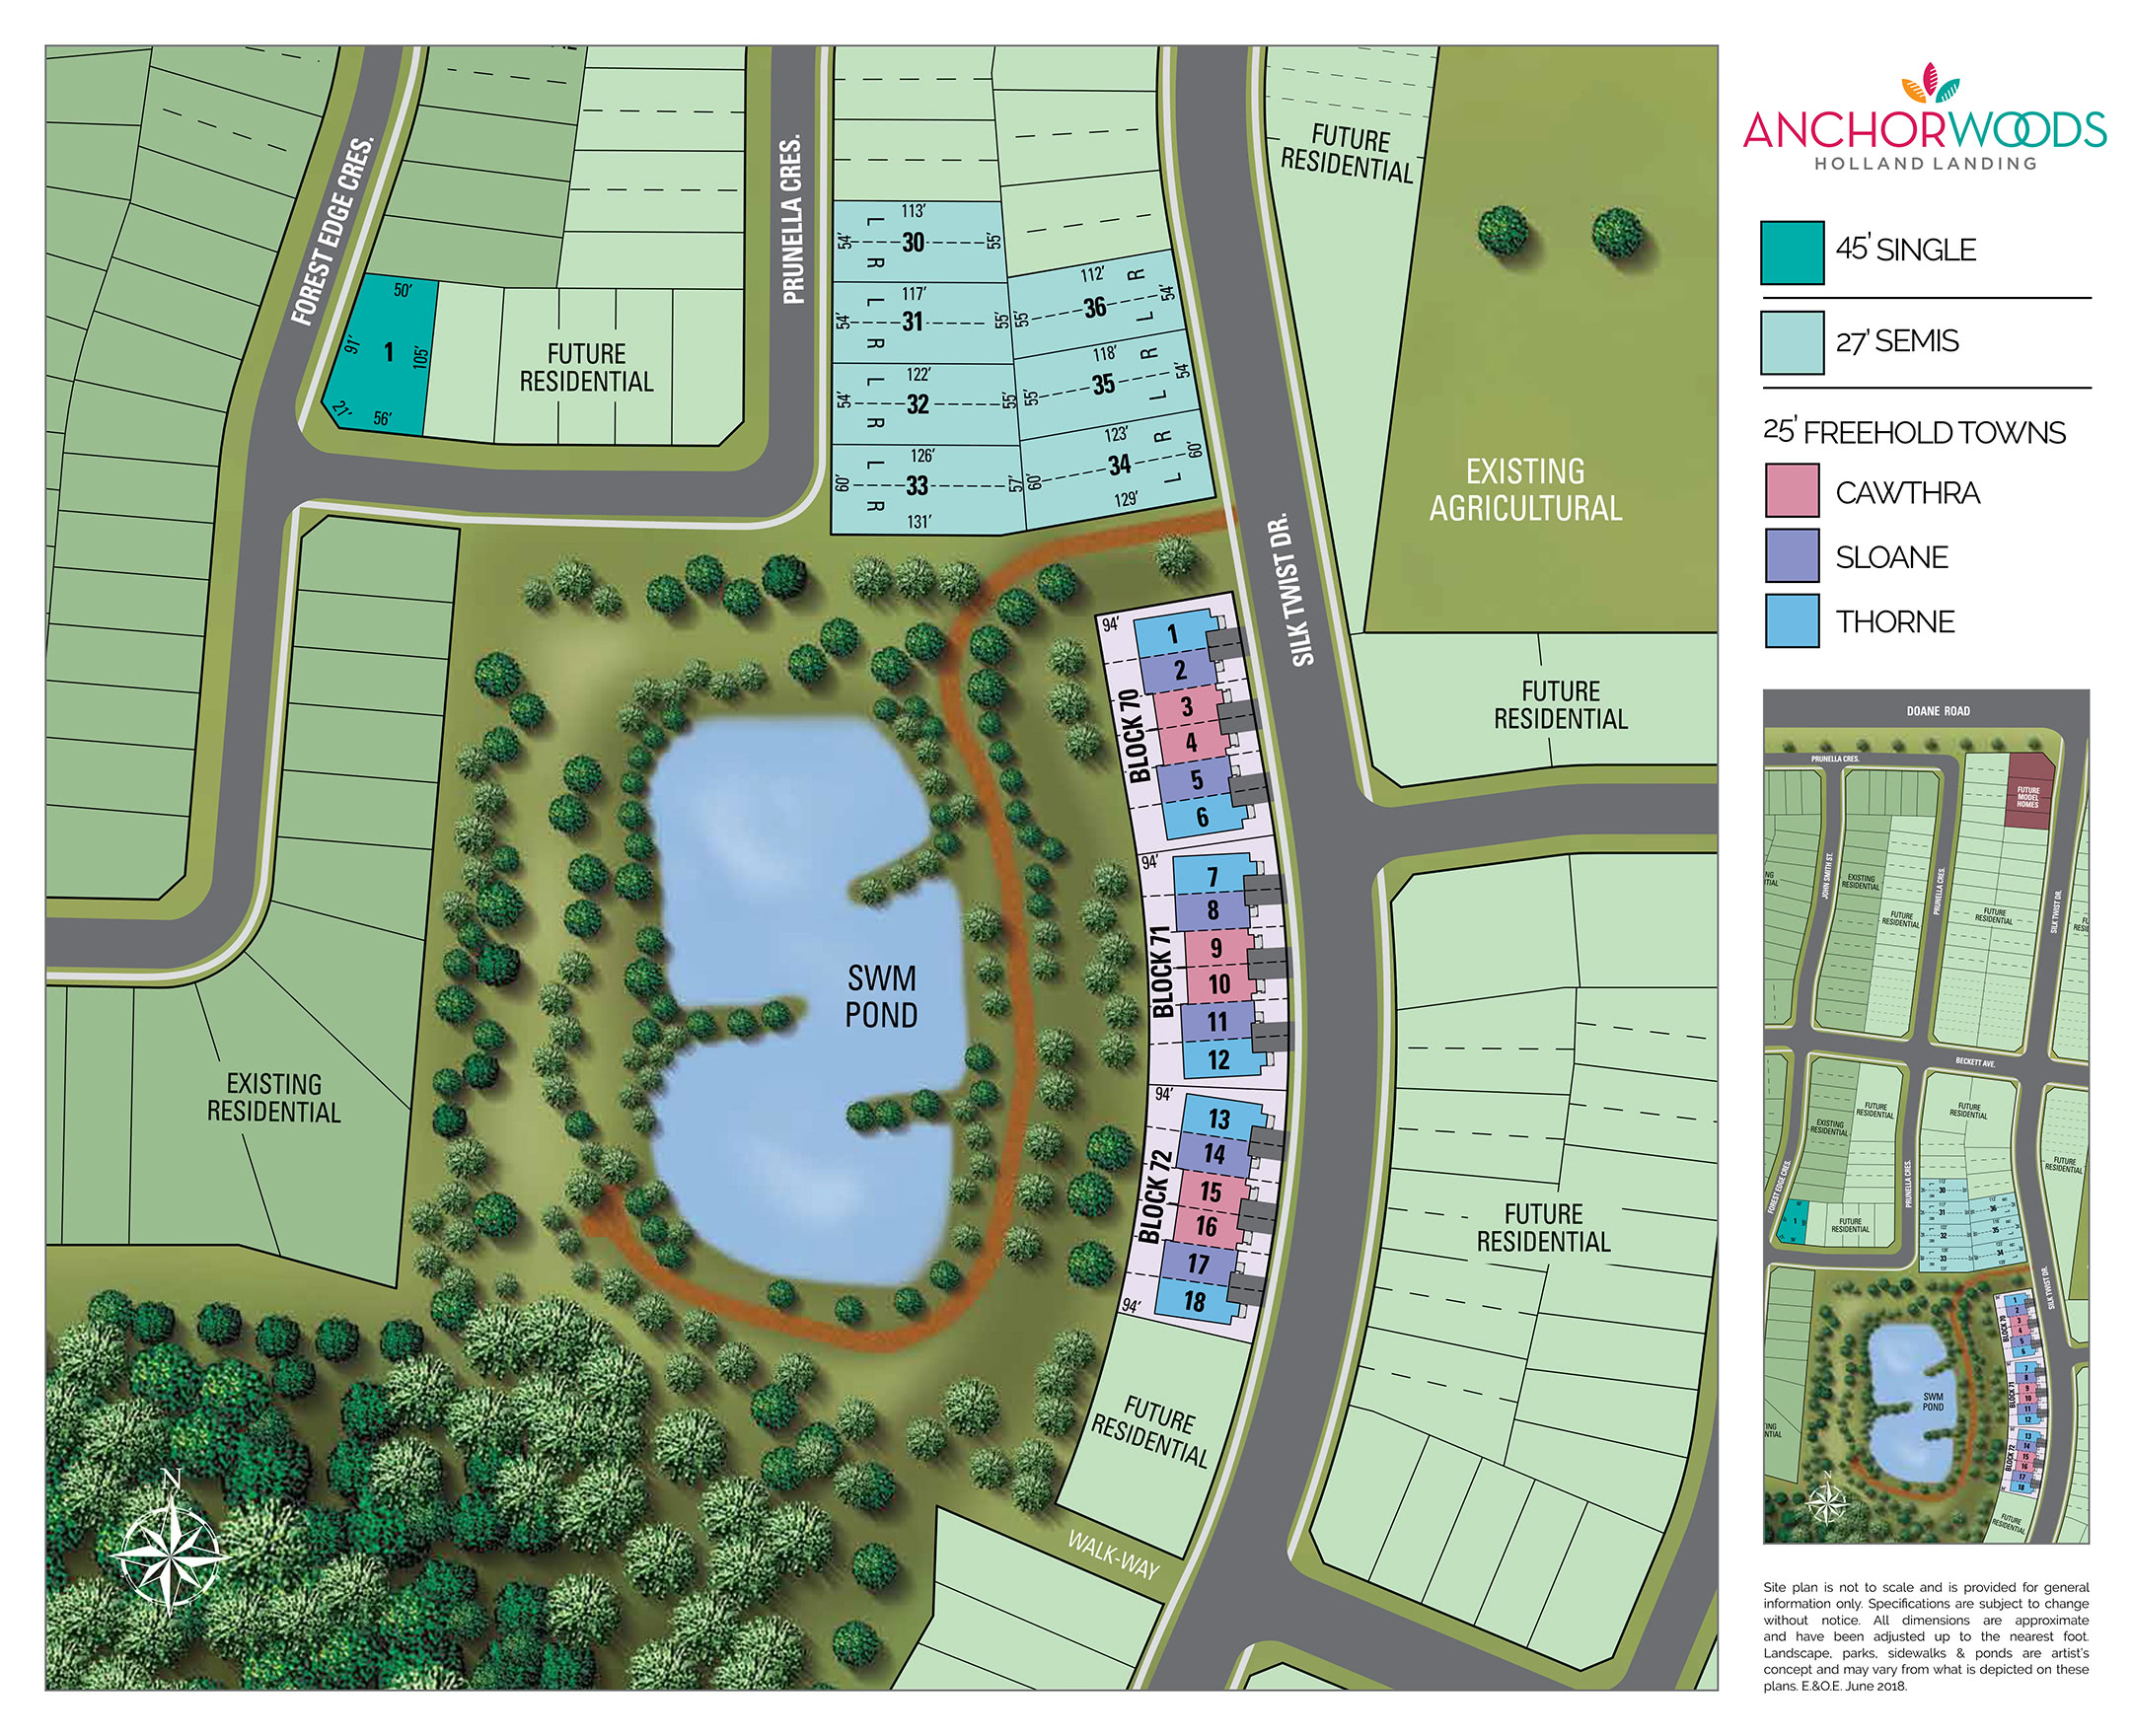 Site plan for Anchor Woods in Holland Landing, Ontario